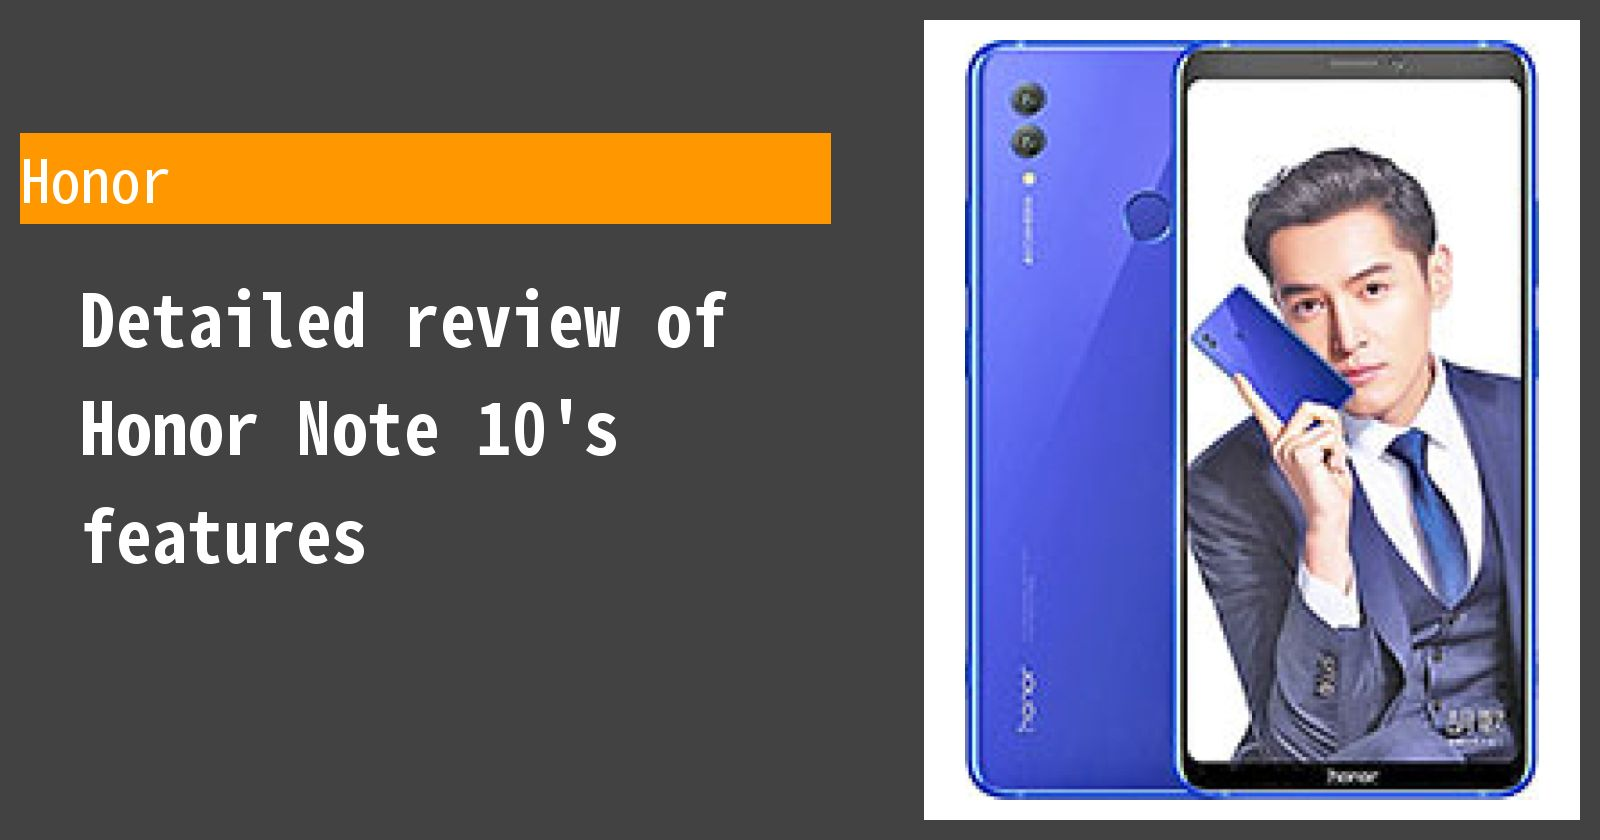 Detailed review of Honor Note 10's features